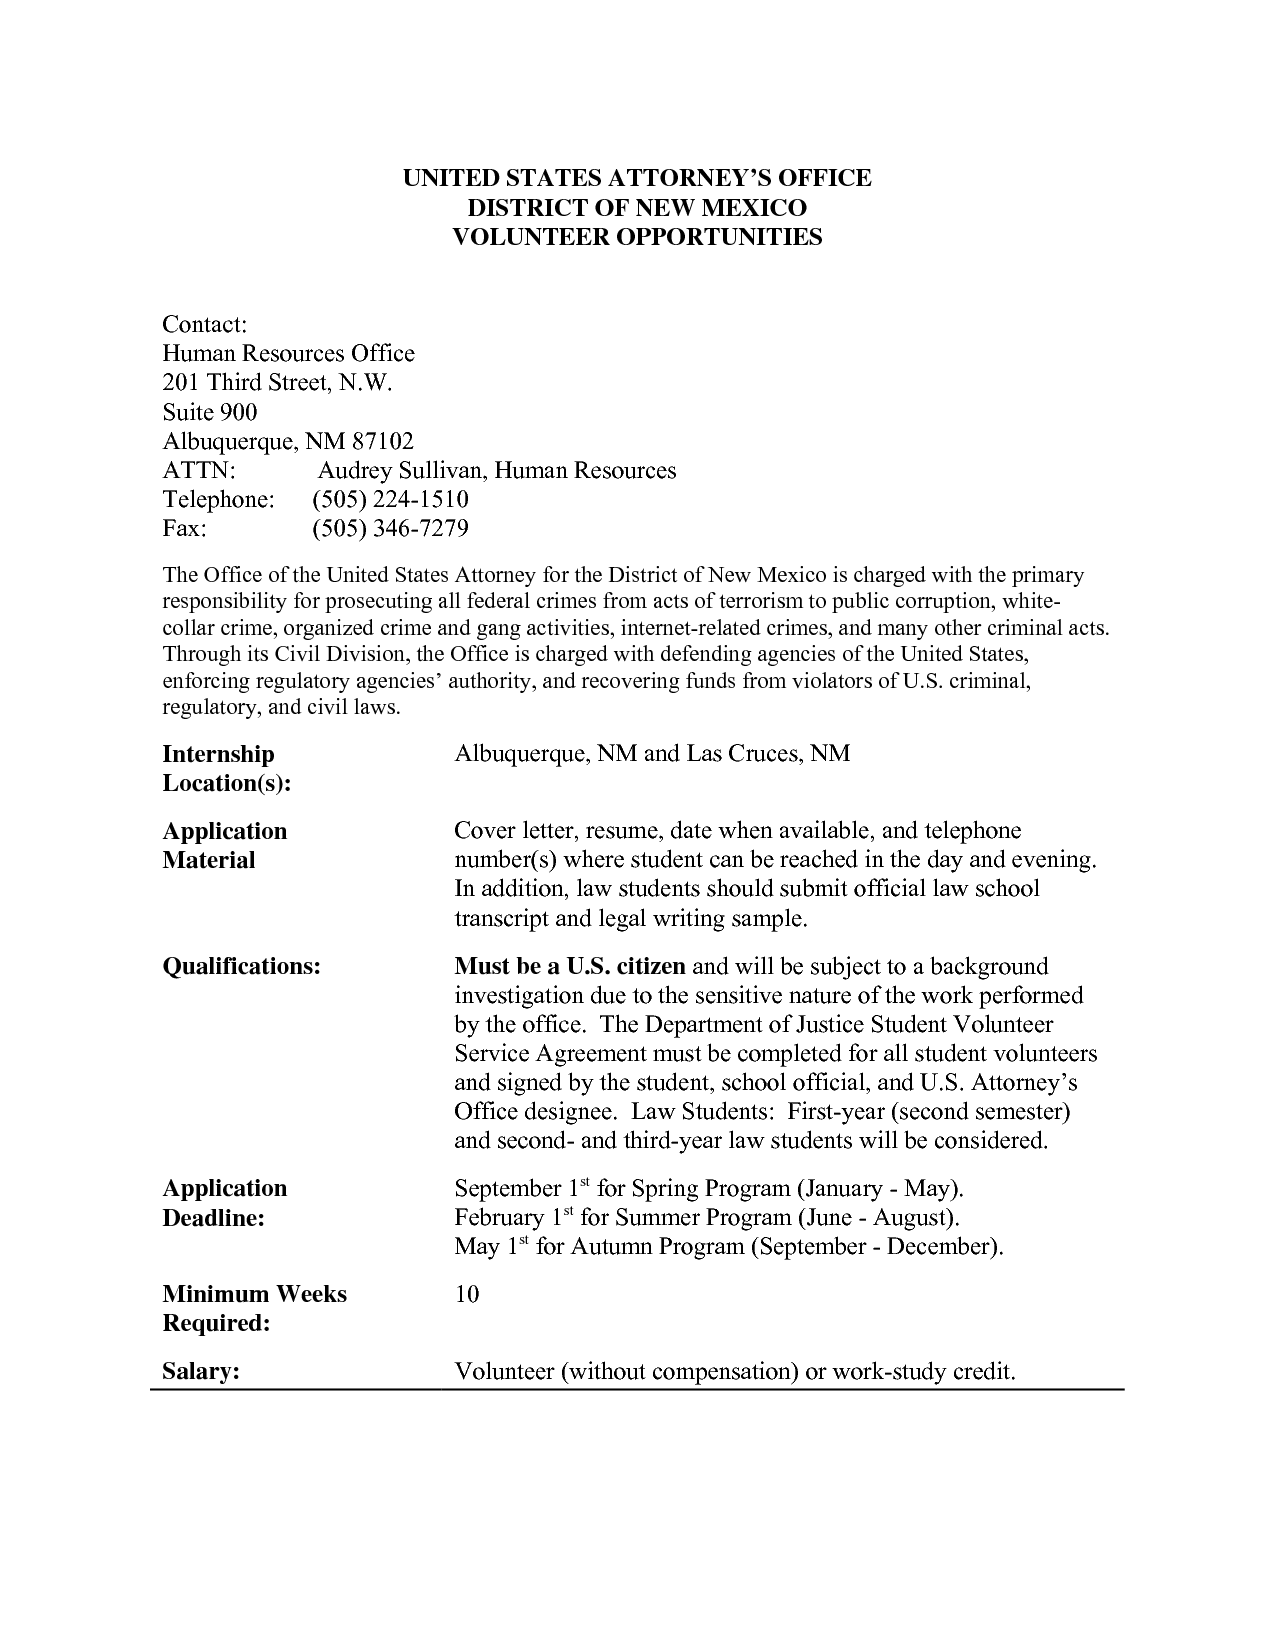 Social Work Resume Objective Volunteer Work On Resumevolunteer Work On Resume Application